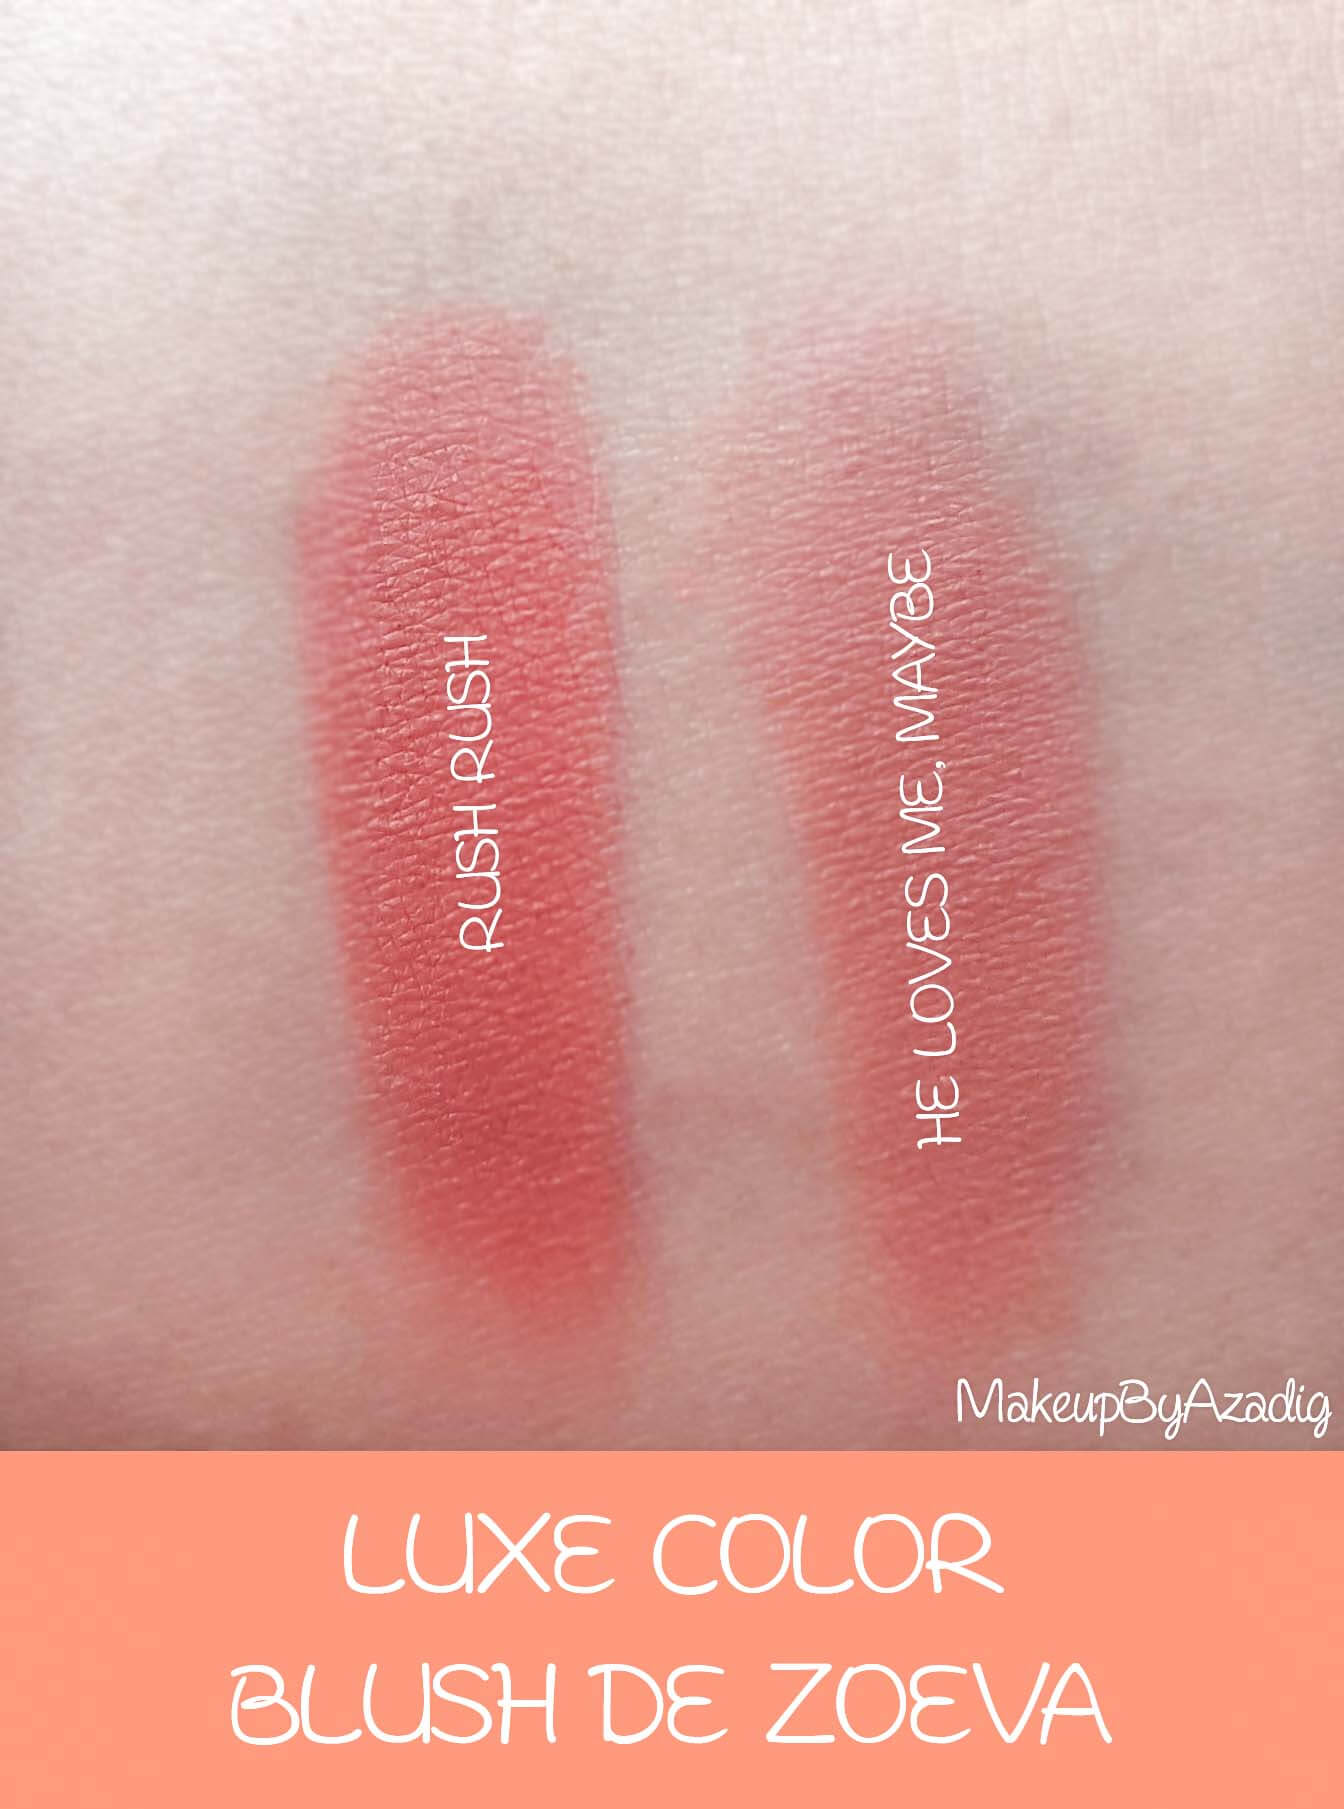 swatches-revue-review-luxe-color-blush-zoeva-sephora-france-helovesmemaybe-rush-rush-avis-swatch-makeupbyazadig-paris-collection